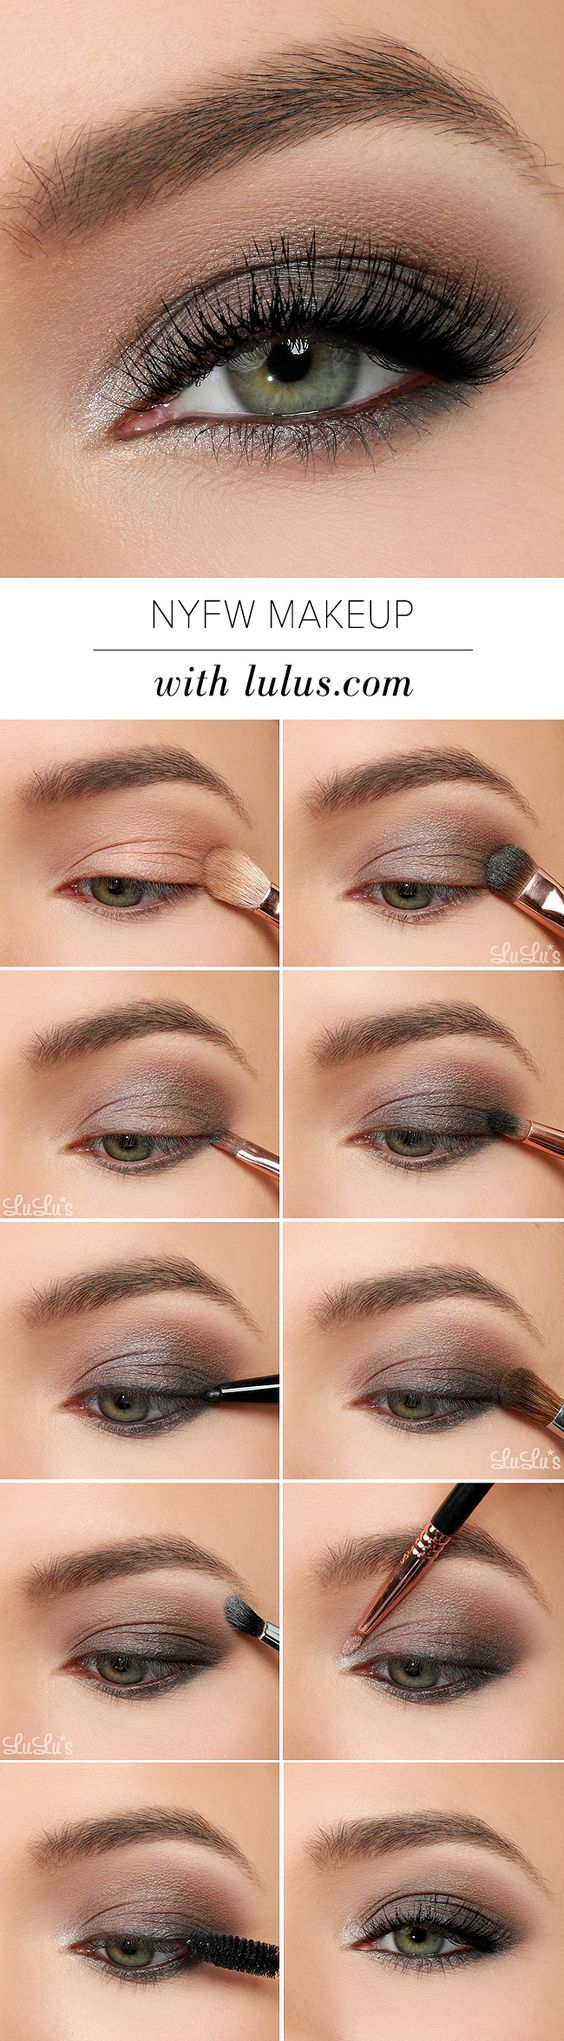 15 easy step by step smokey eye makeup tutorials for beginners step by step smokey eye makeup tutorials baditri Image collections